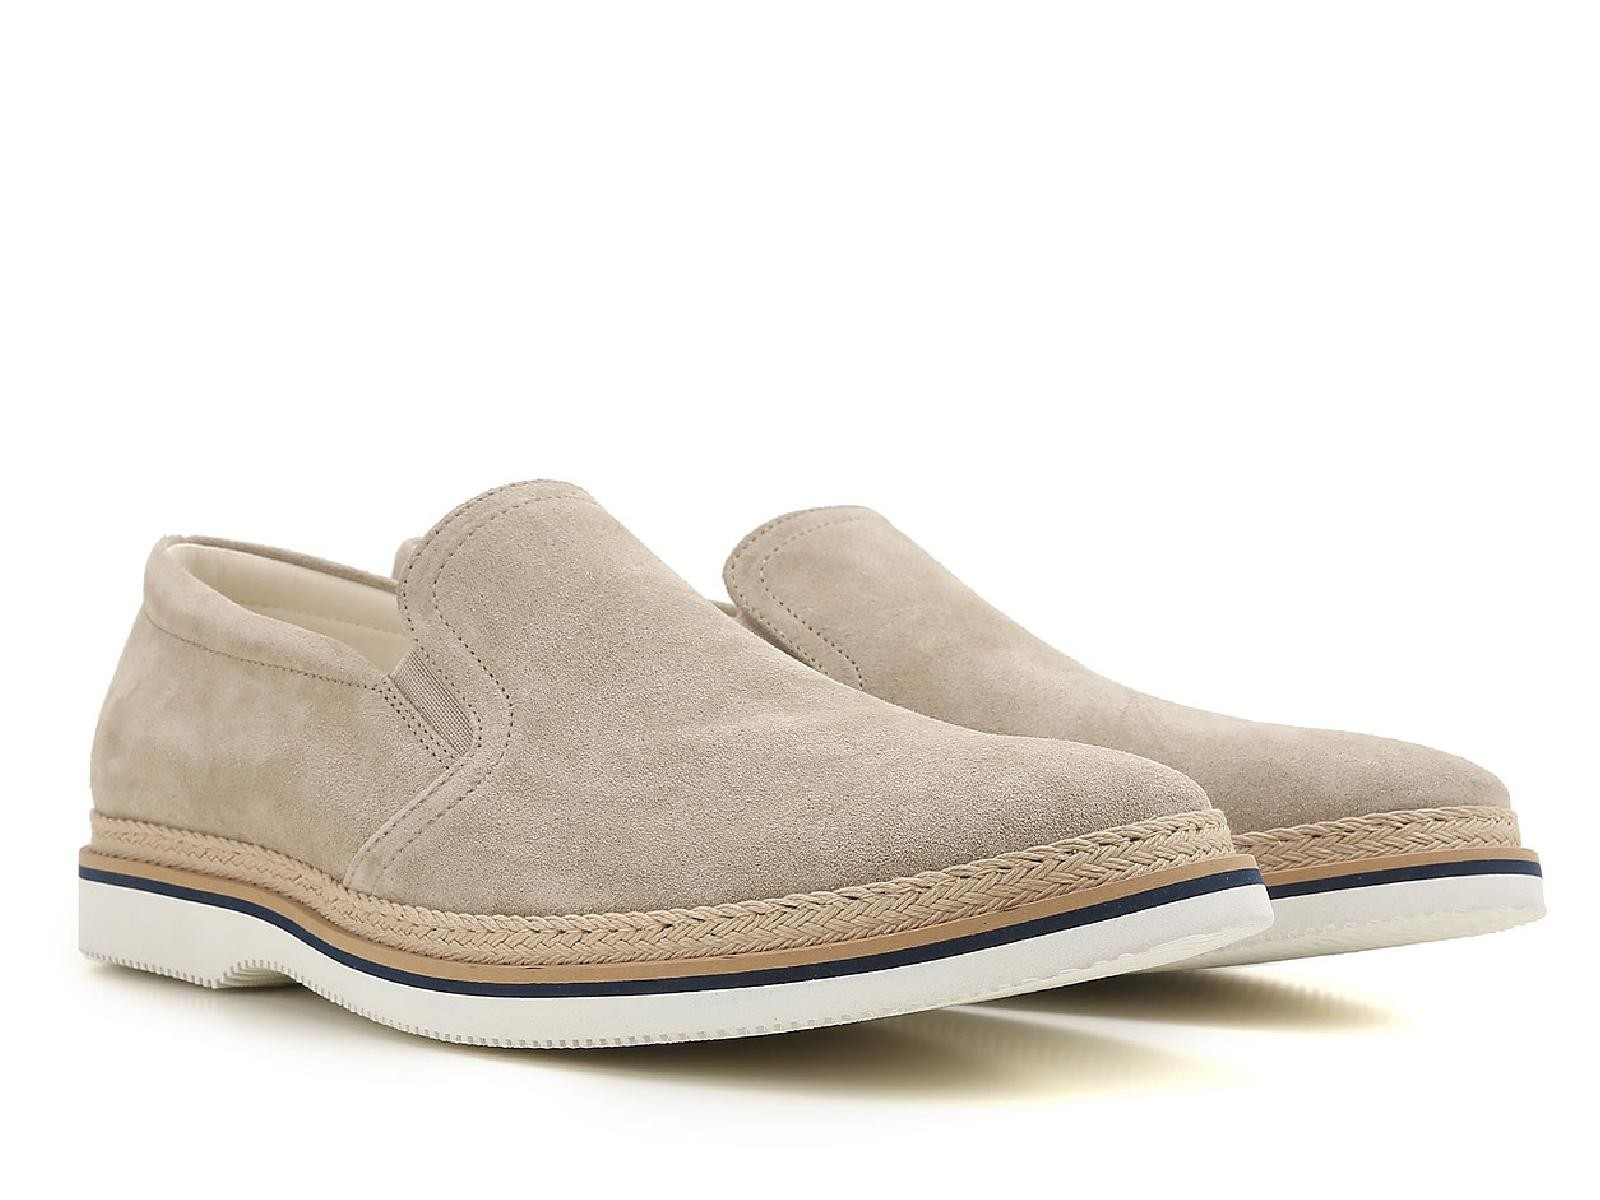 discount get to buy Hogan Men's Beige Suede Loafers clearance recommend za5cw